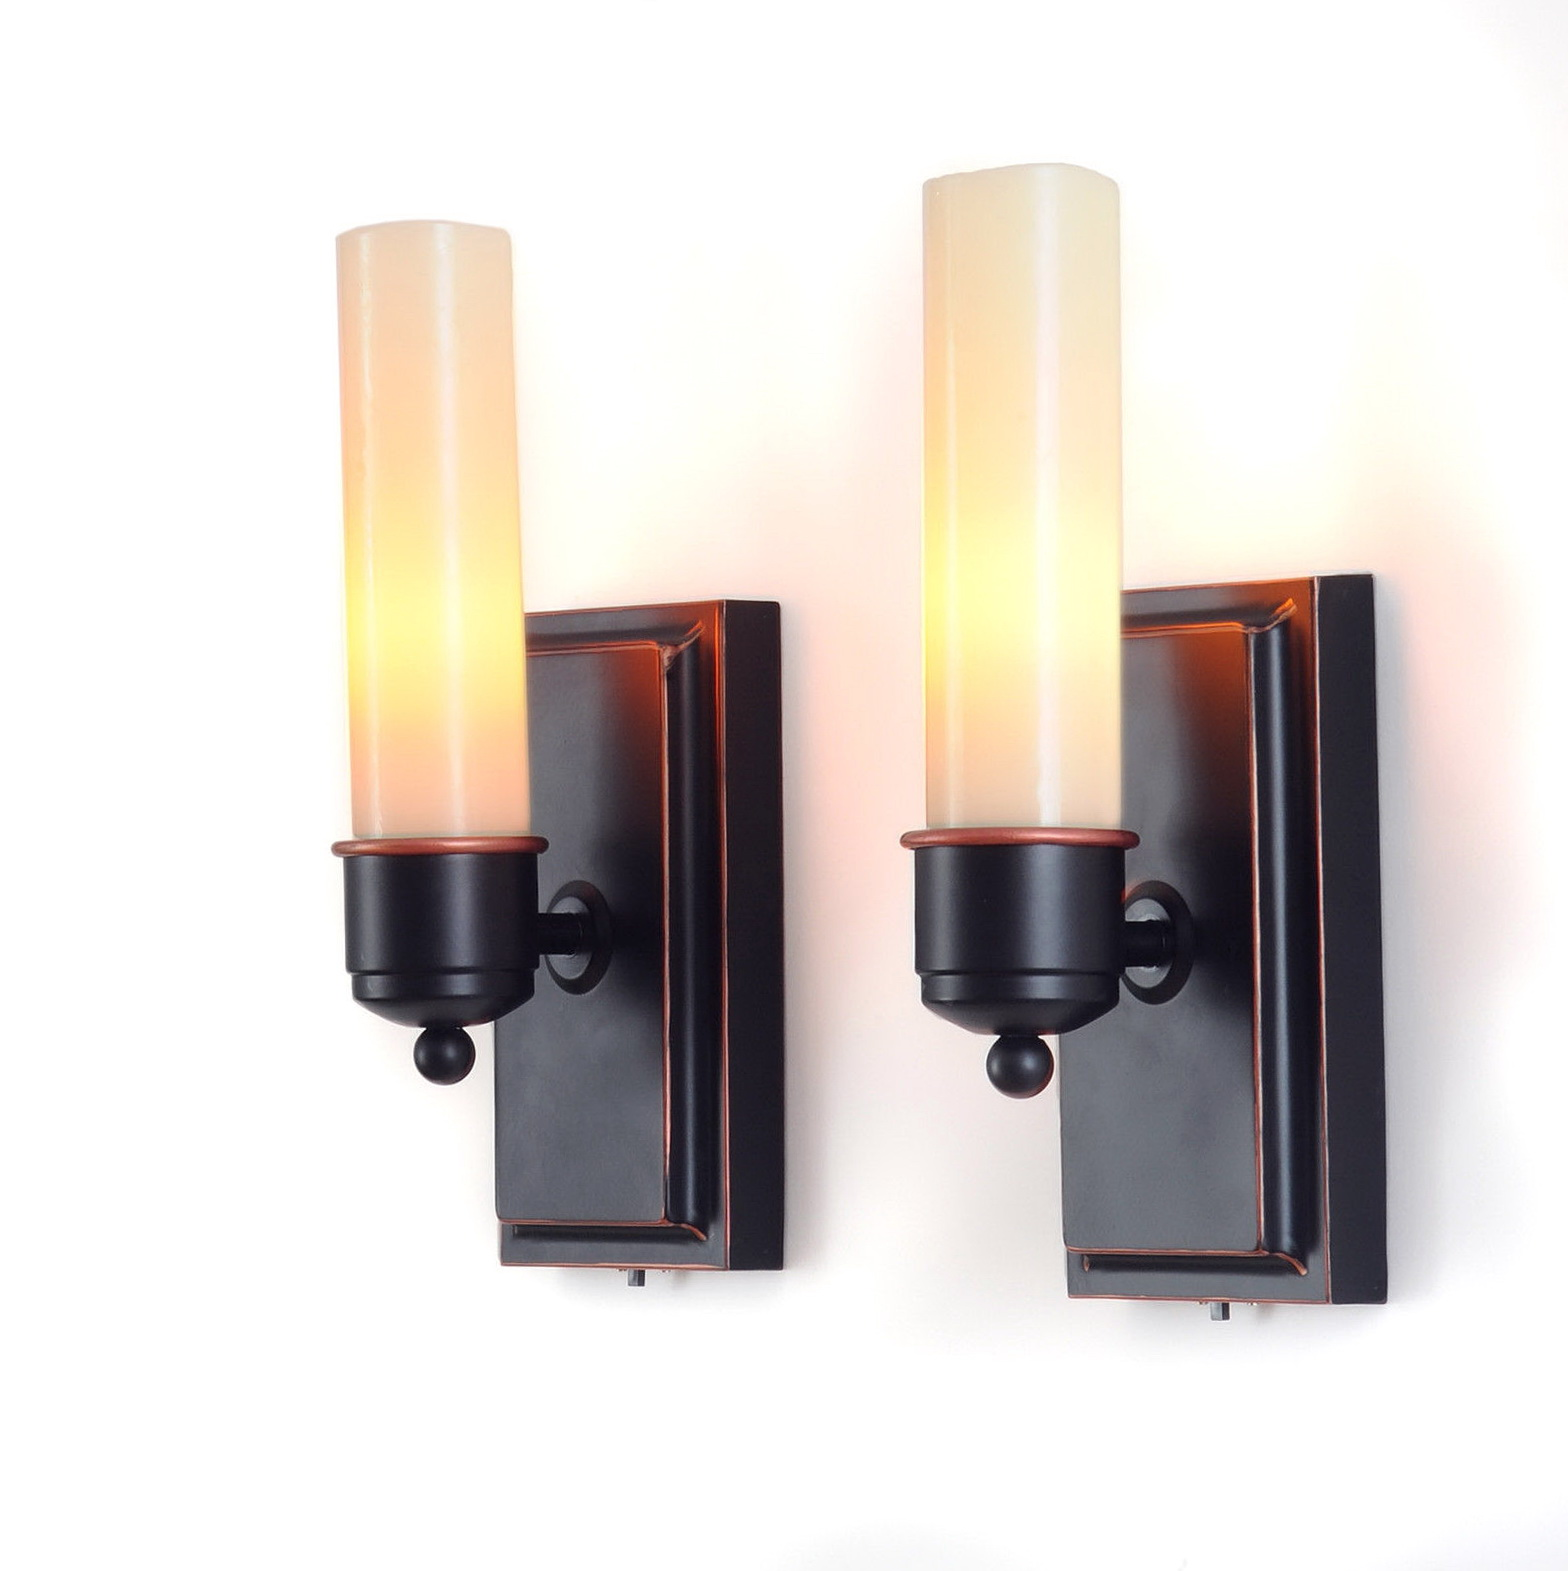 Battery Operated Lights For Wall : Change the look of your garden with Wall light battery operated Warisan Lighting